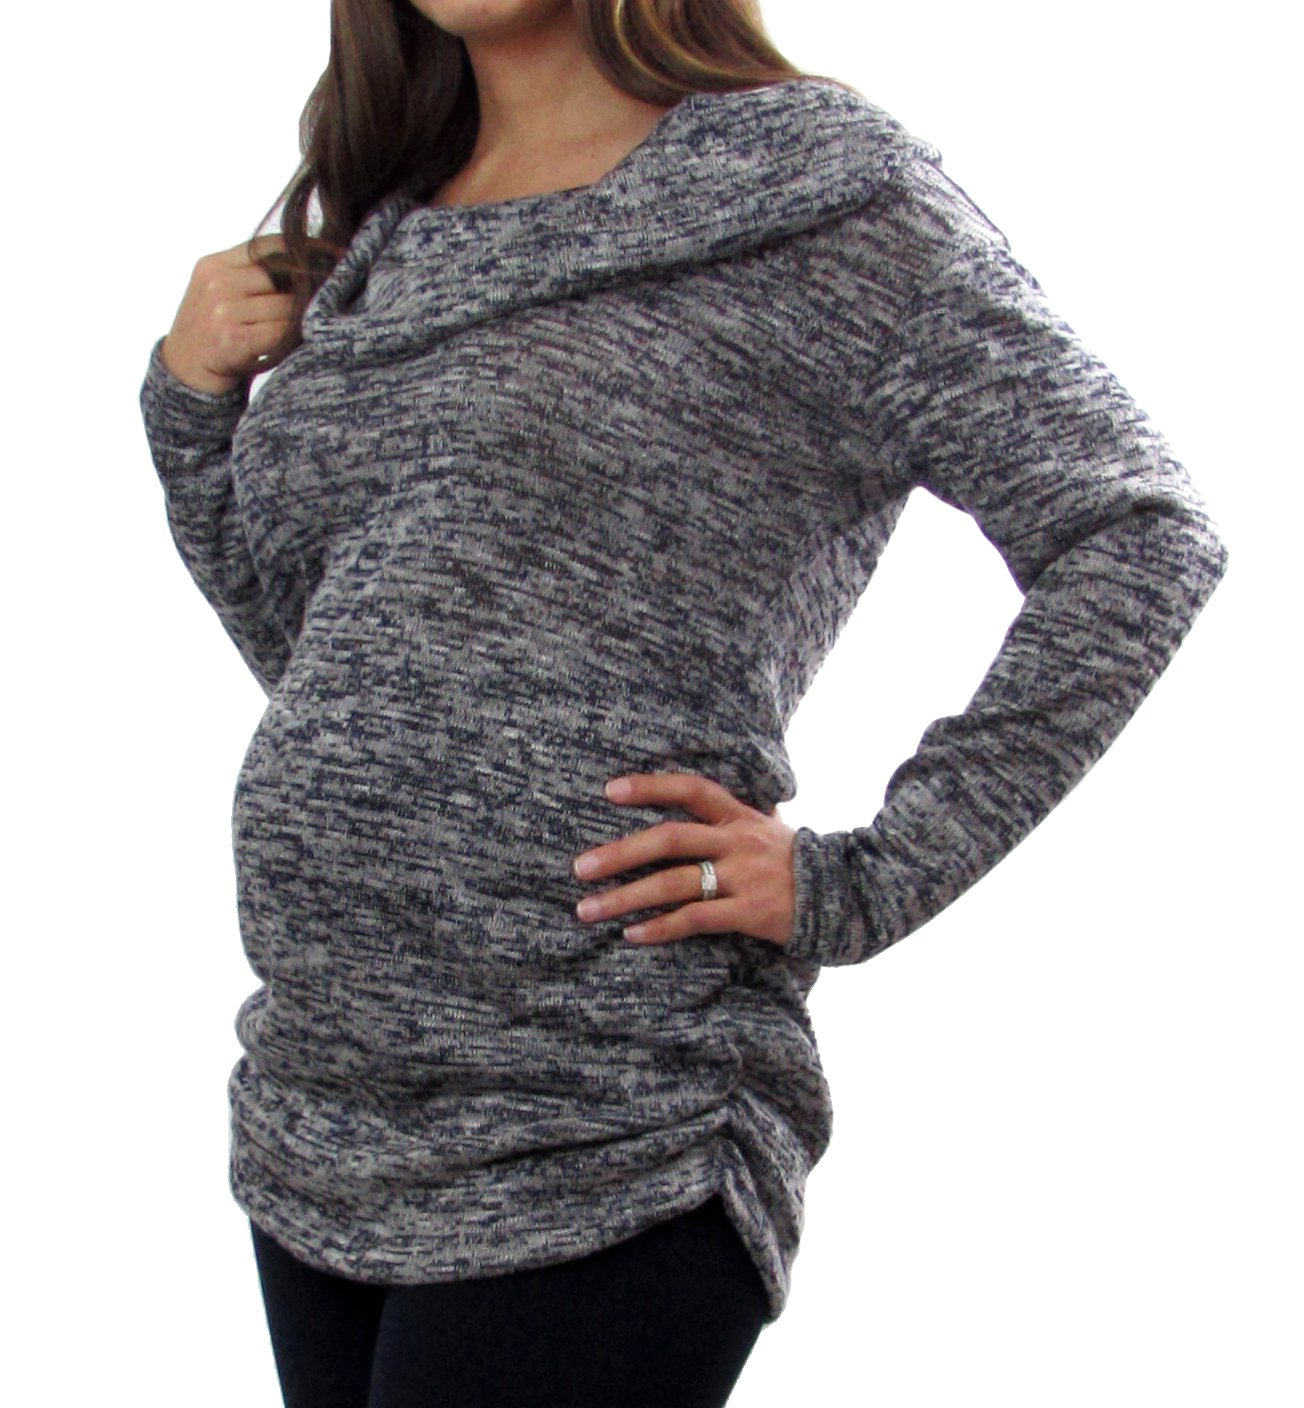 Embrace Your Bump Navy Cowl Neck Maternity Sweater (Small)